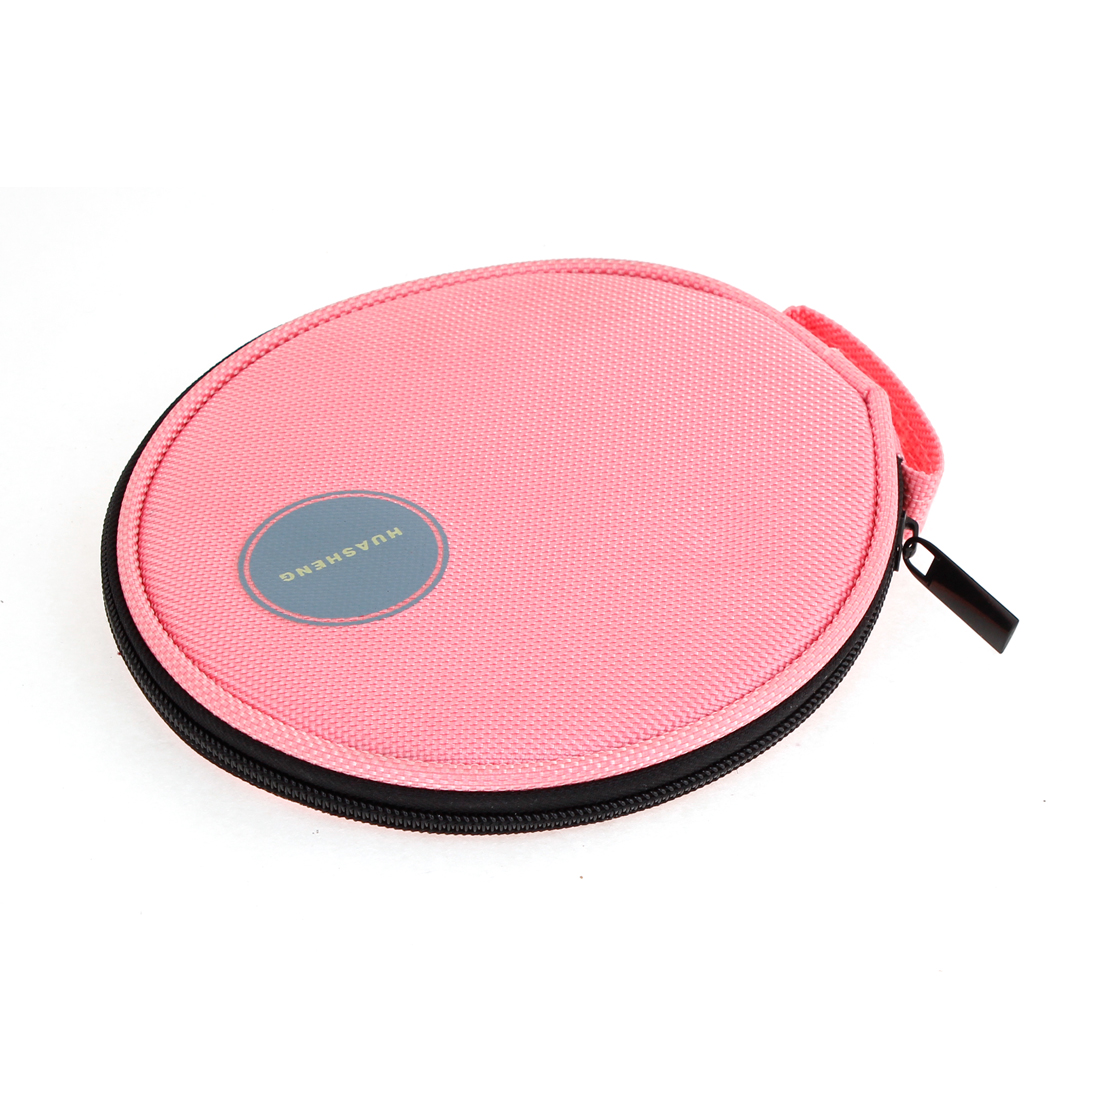 General Zipper Closure Pink Oxford Fabric Shell 20 Capacity DVD CD Holder Bag